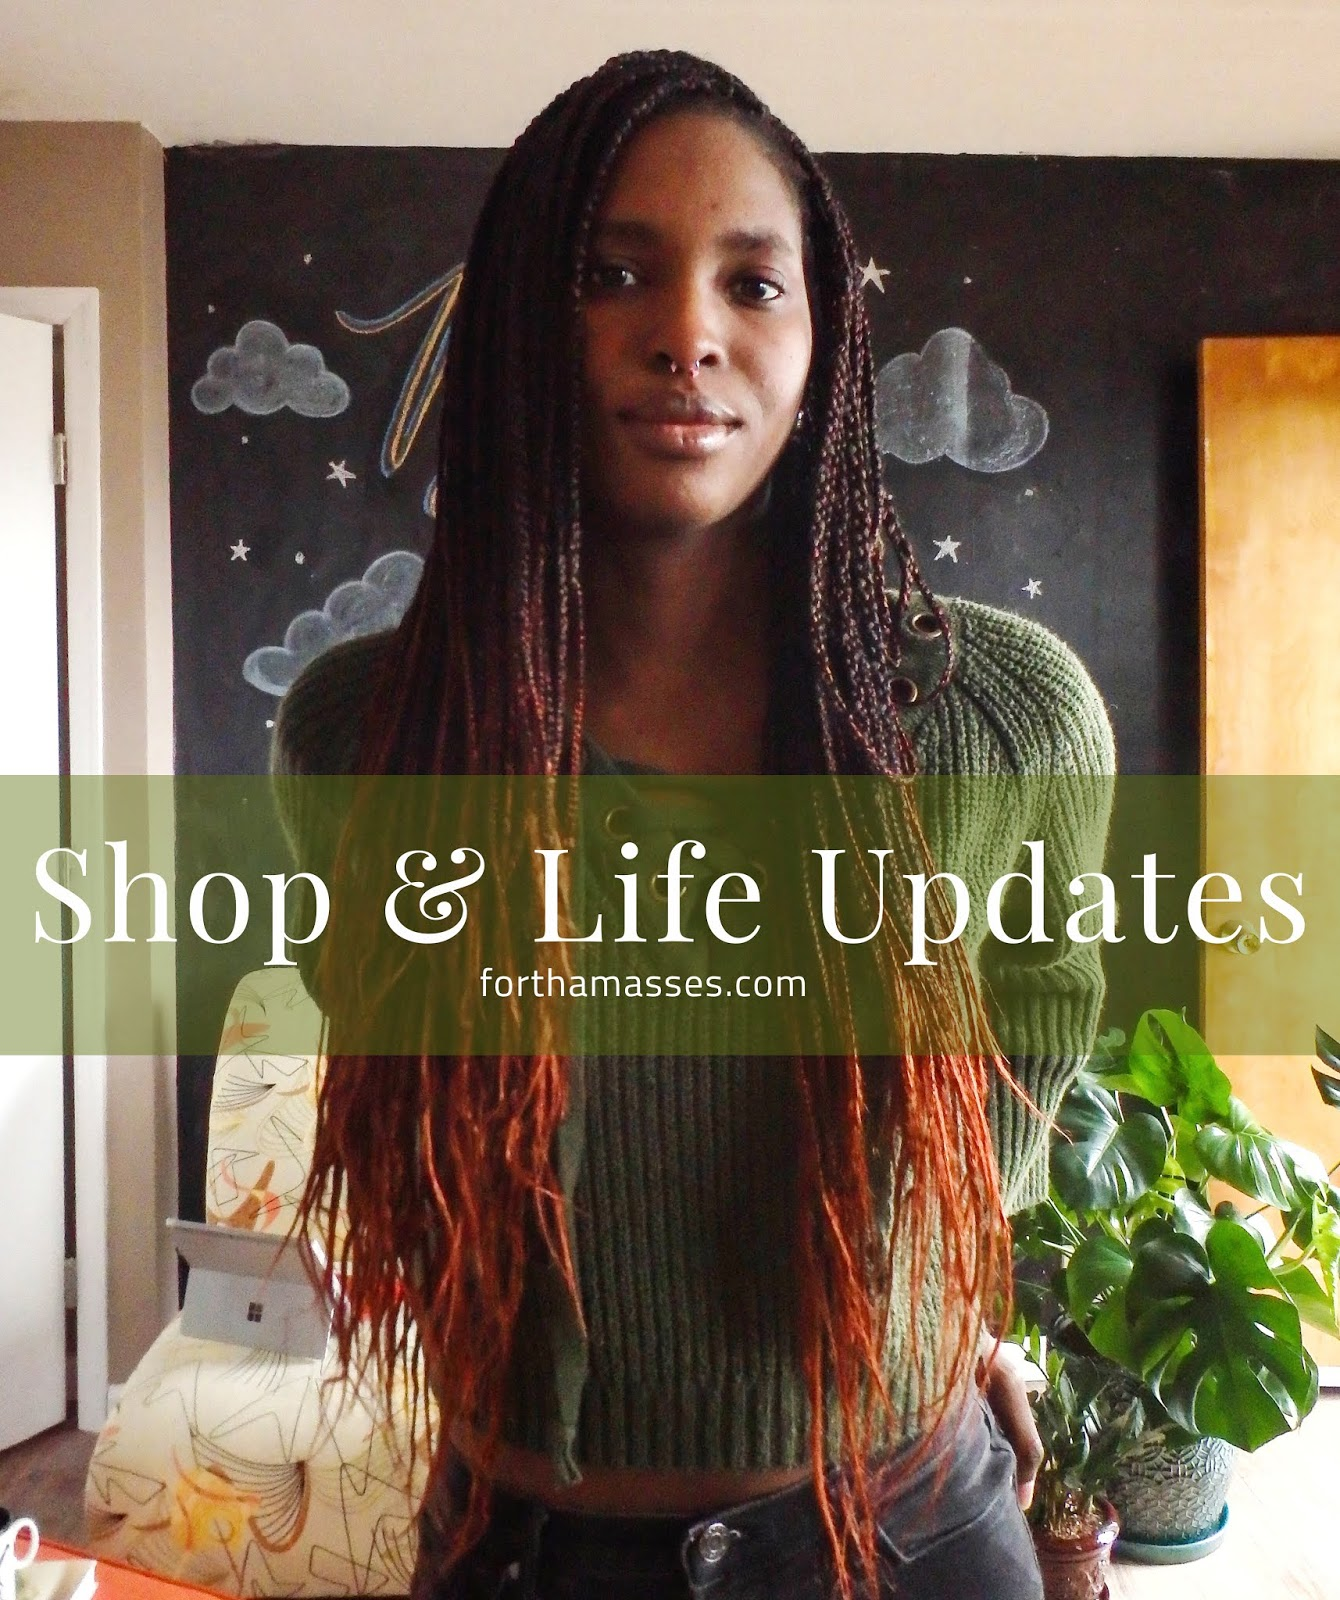 Brief update about life and opening of the online shop